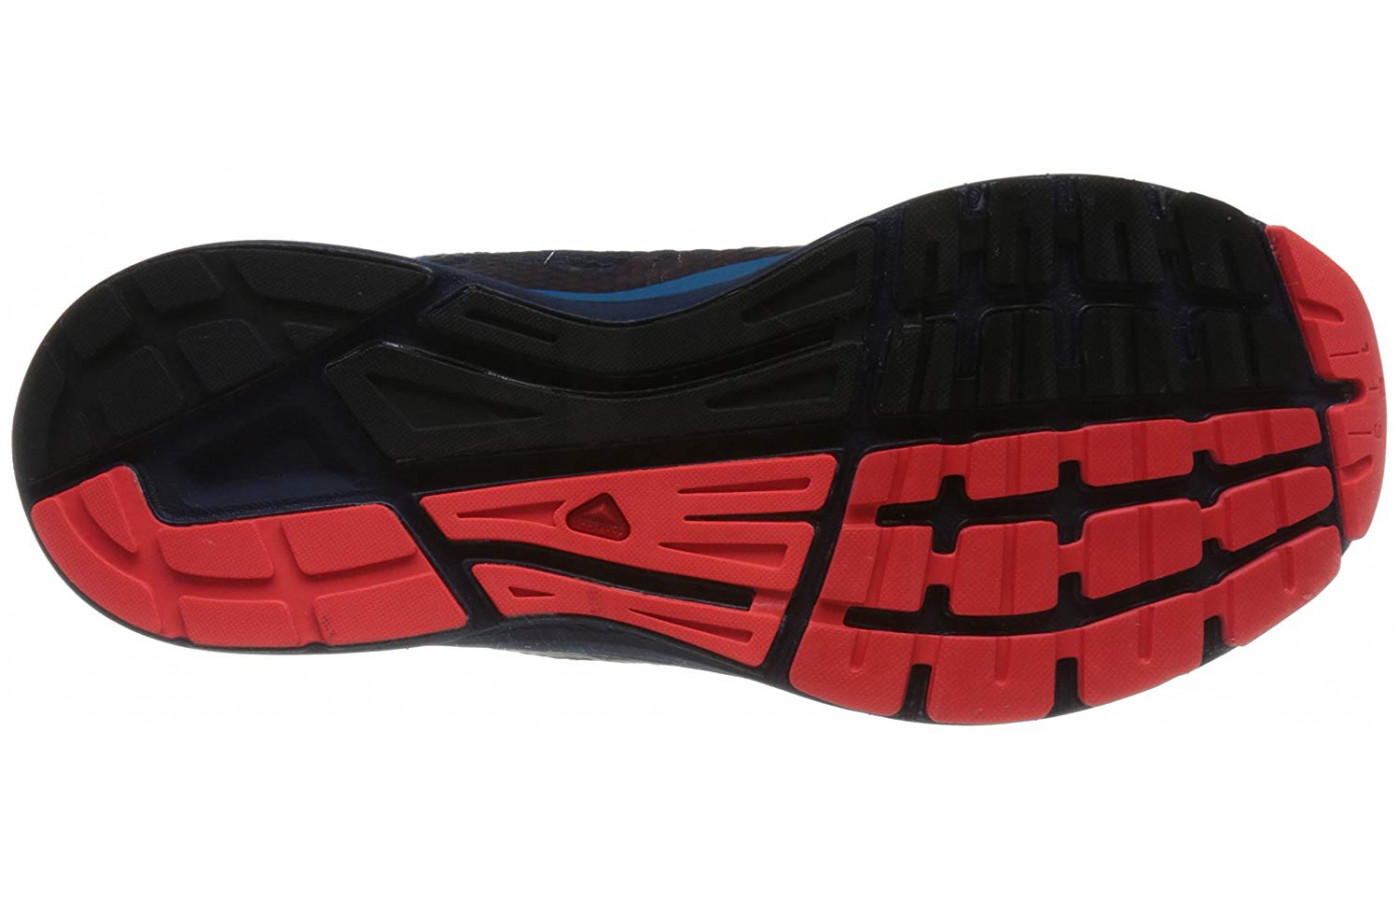 The Sonic RA features a Wet Traction Contagrip outsole.